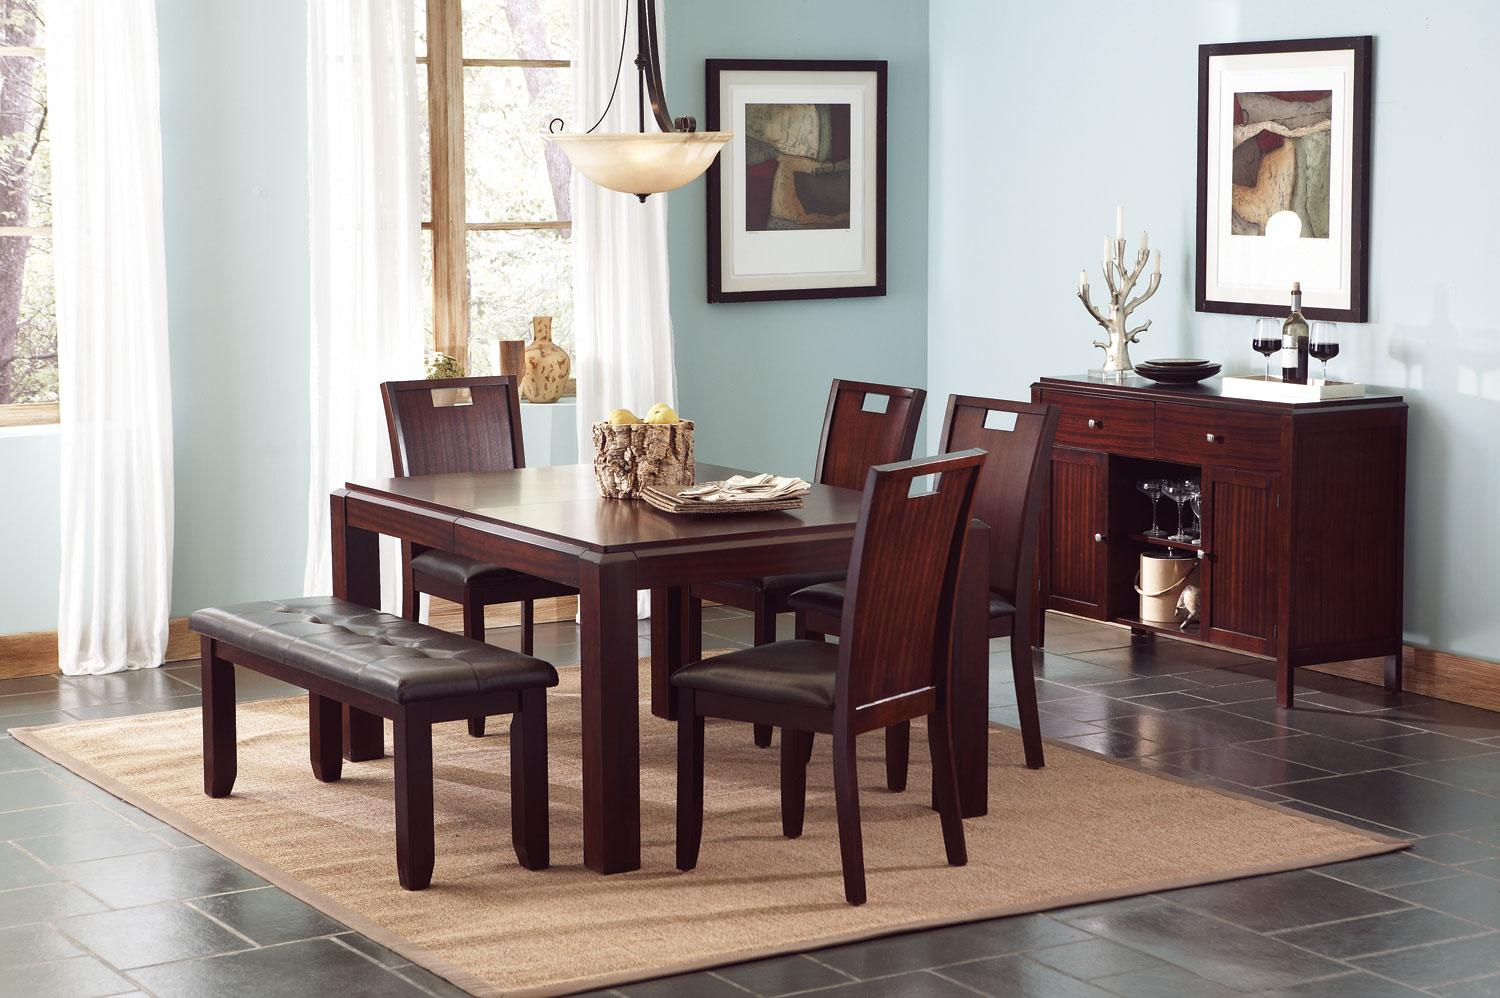 atlanta furniture specialist - Furniture Specialist